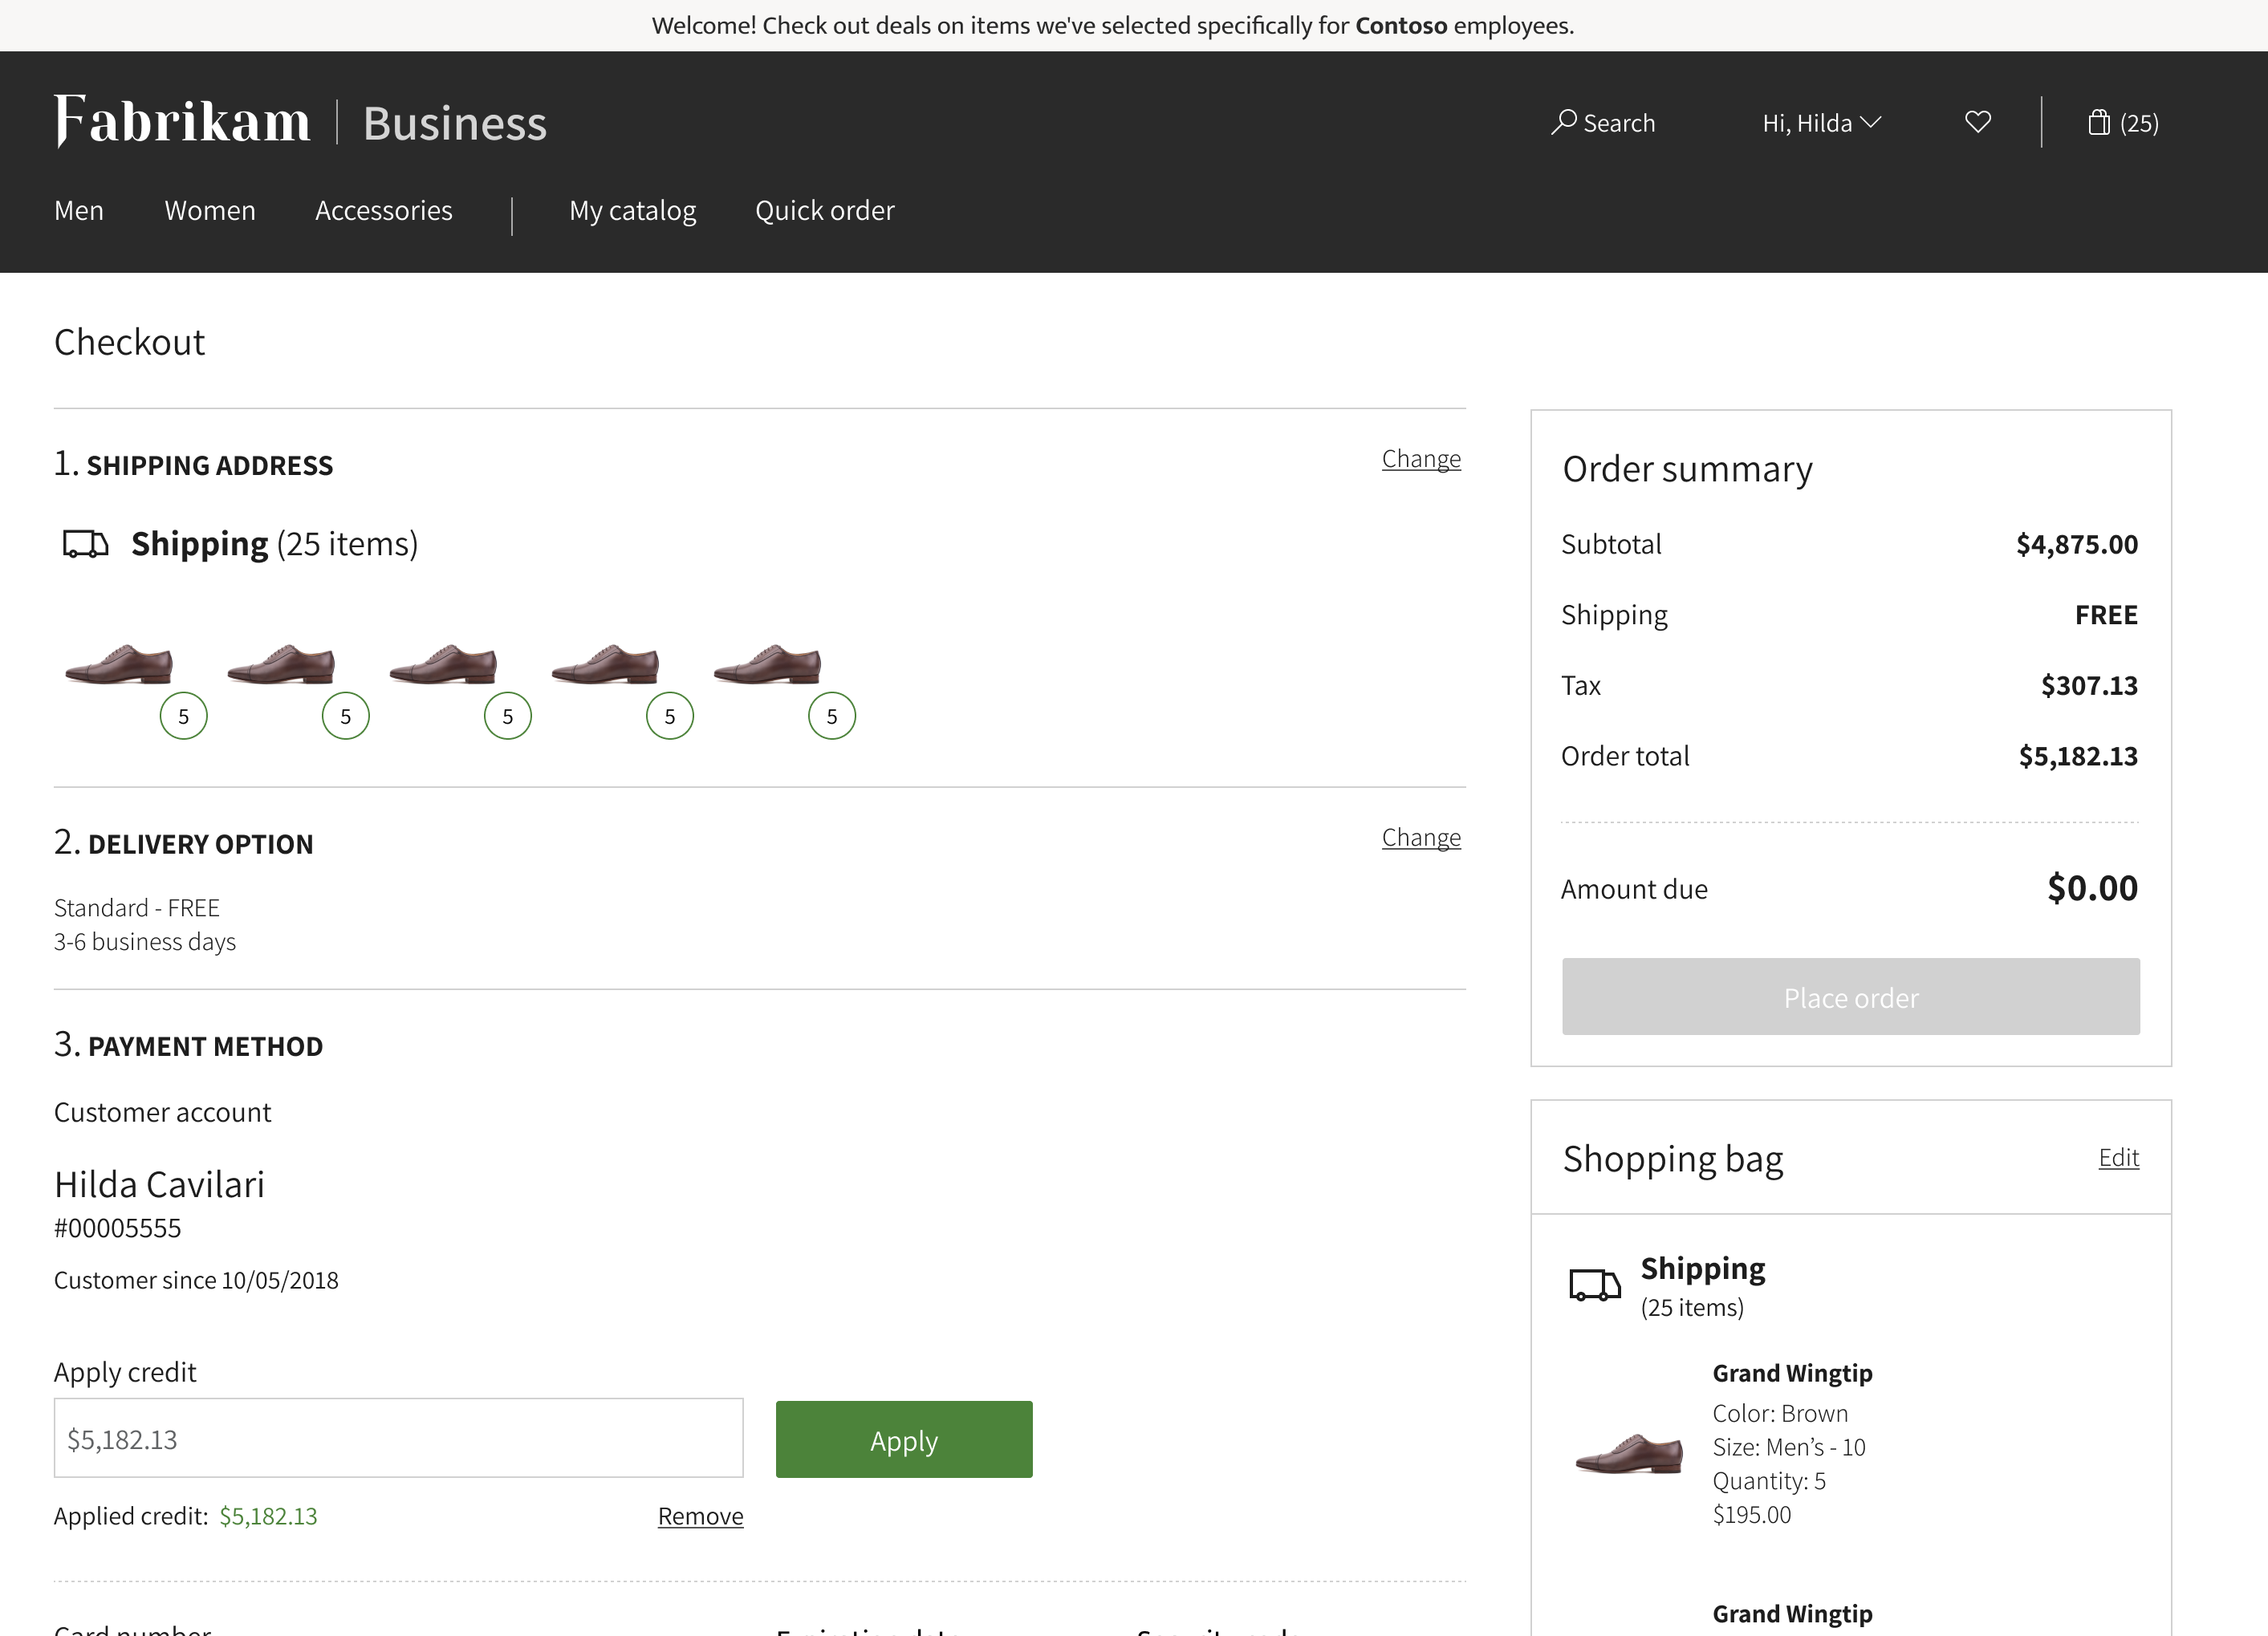 Image displaying the checkout screen for a business order including shipping details, payment method and order summary.